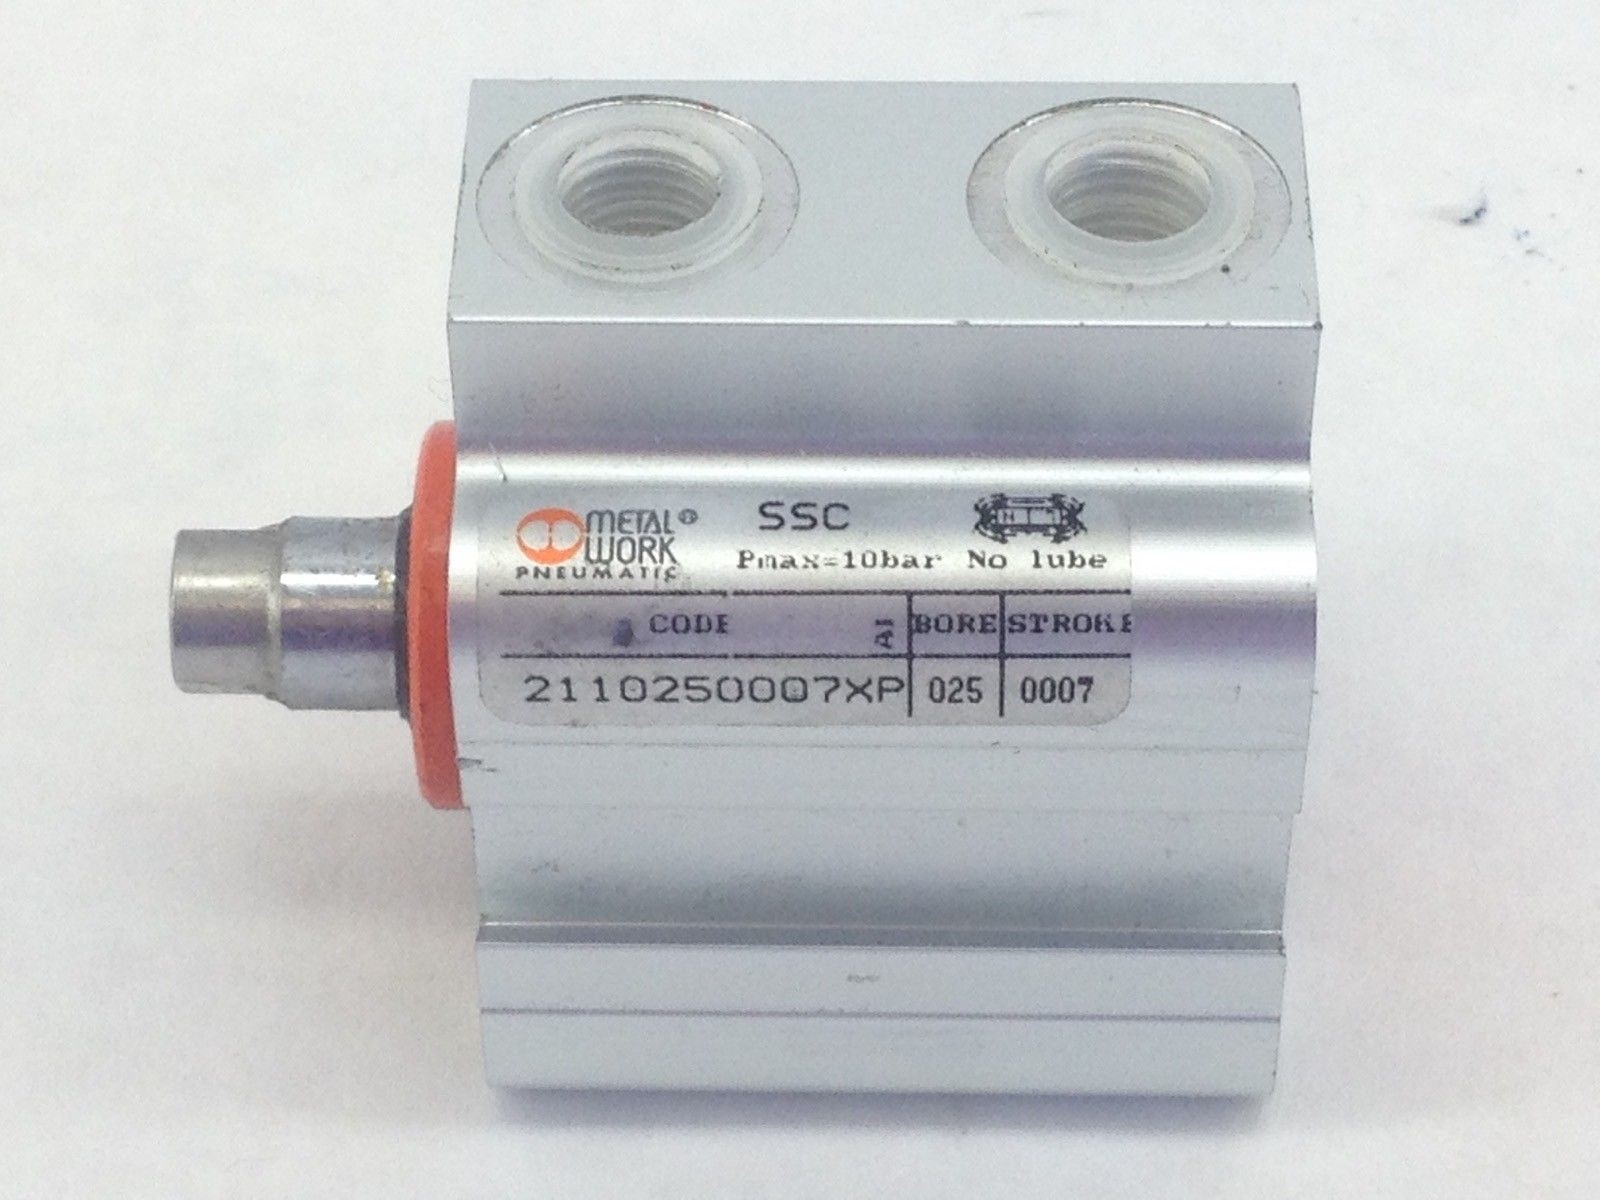 METAL WORK PNEUMATICS 2110250007XP COMPACT AIR CYLINDER (A822) 1